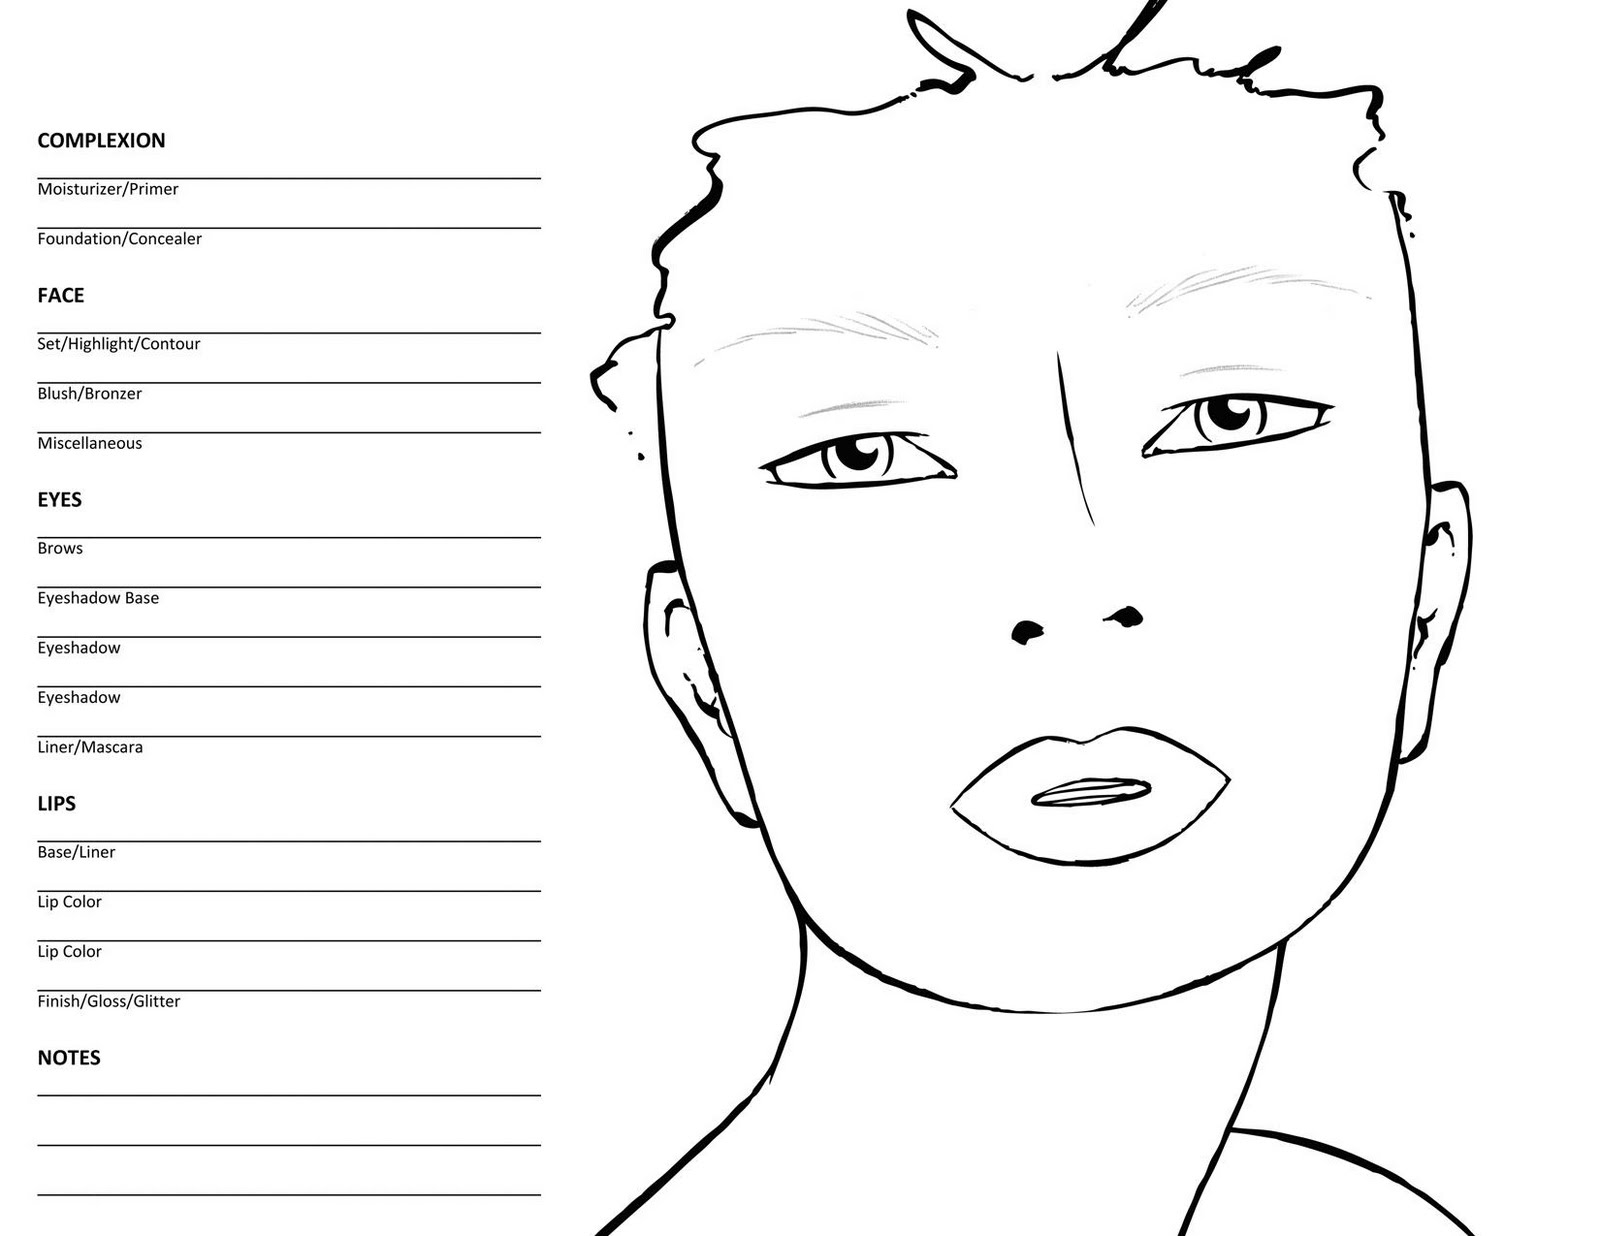 coloring face template blank face coloring page getcoloringpagescom coloring face template 1 1